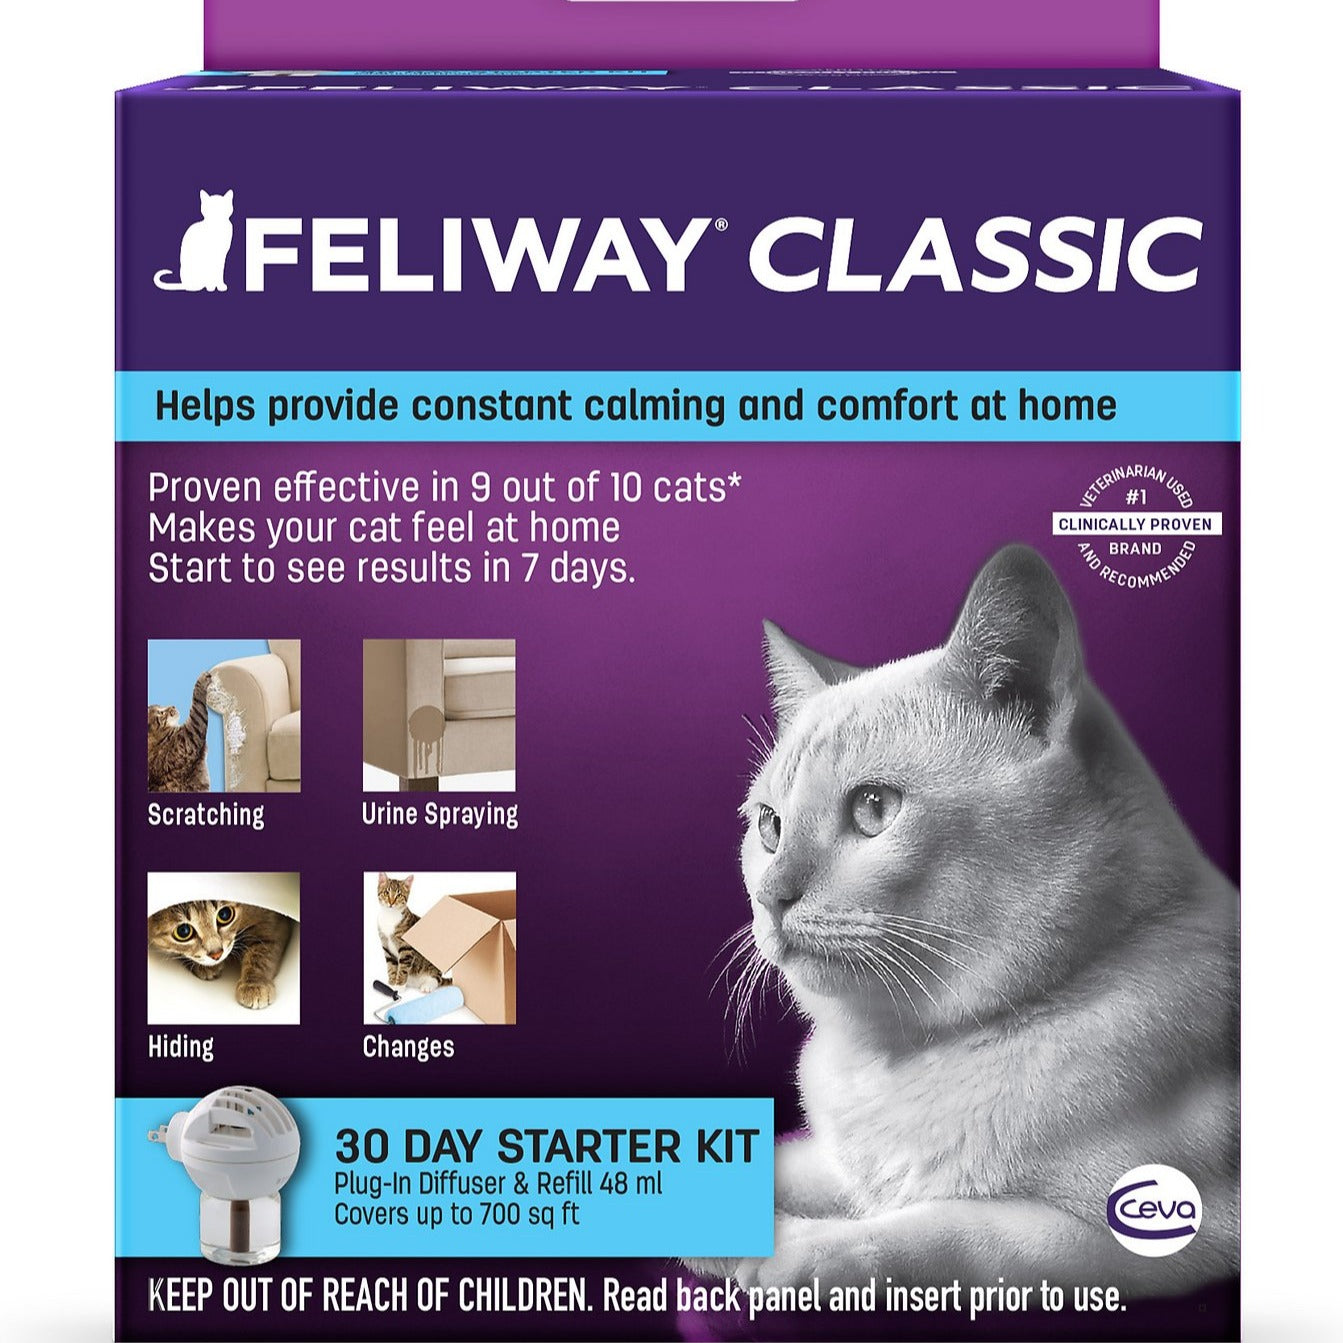 Feliway Classic - 30 Day Starter Kit Plug-In Diffuser & Refill, 48-mL